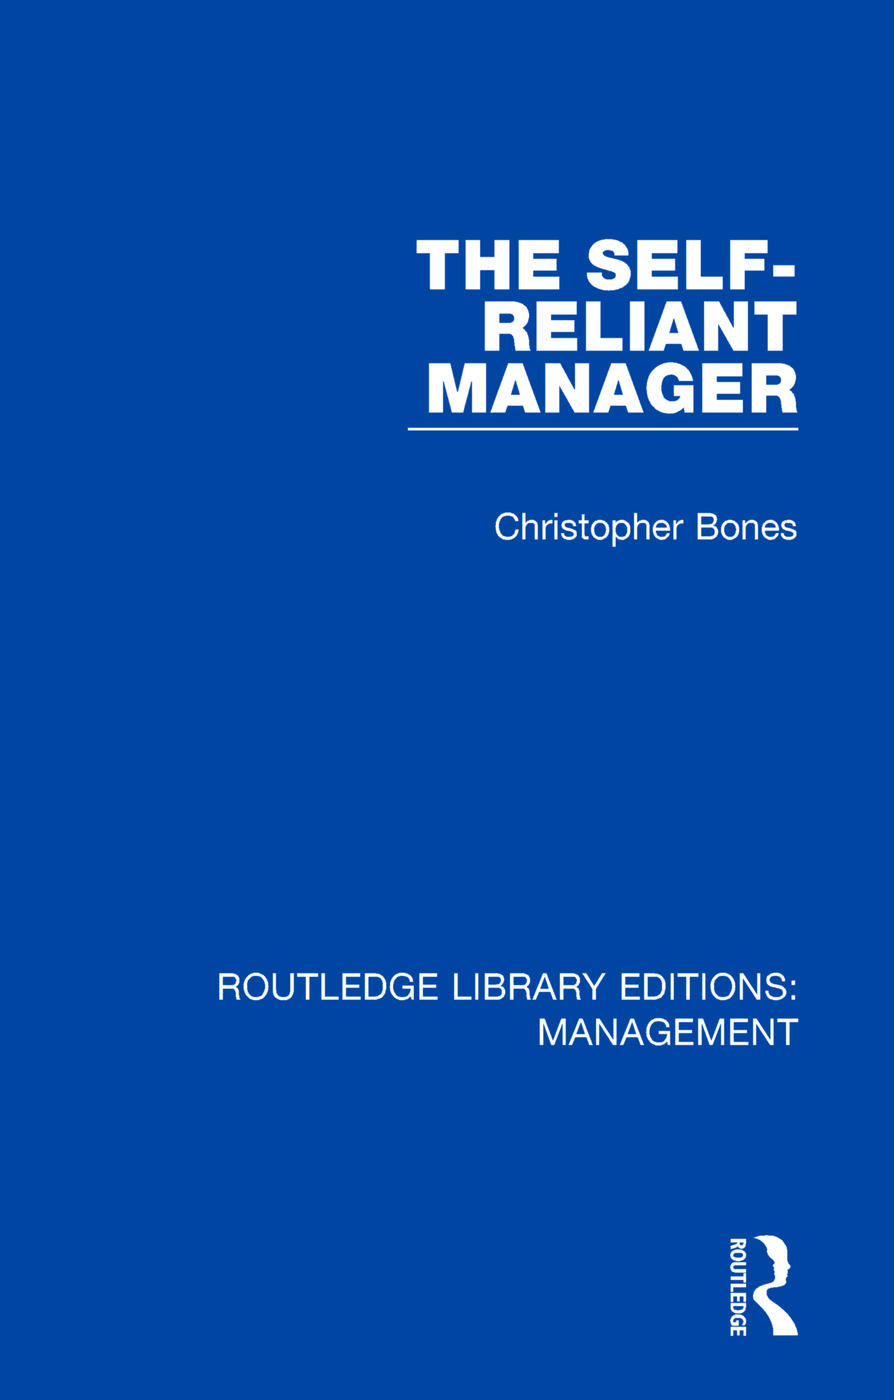 The Self-Reliant Manager